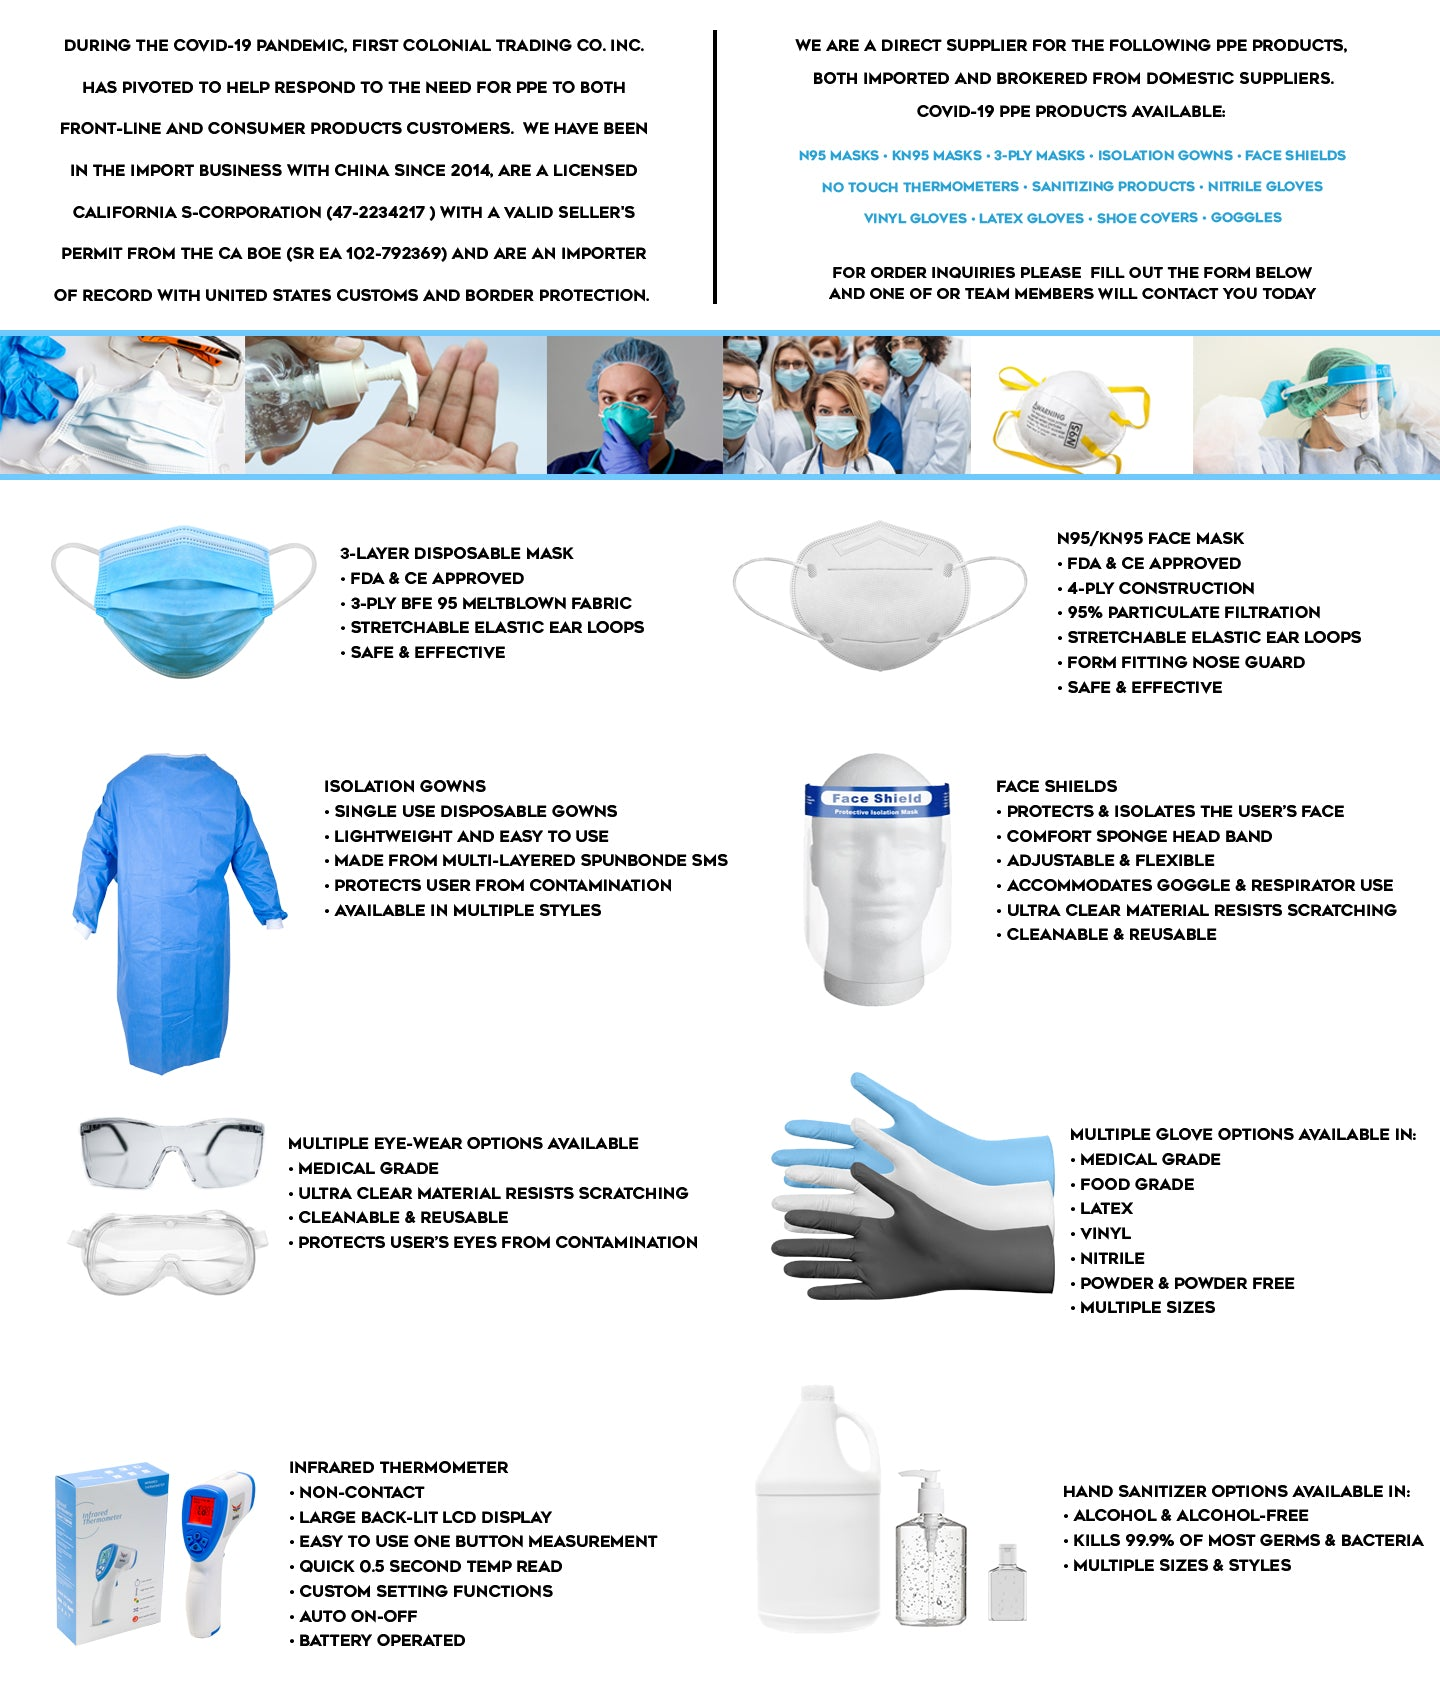 PPE PRODUCTS AND SUPPLIES